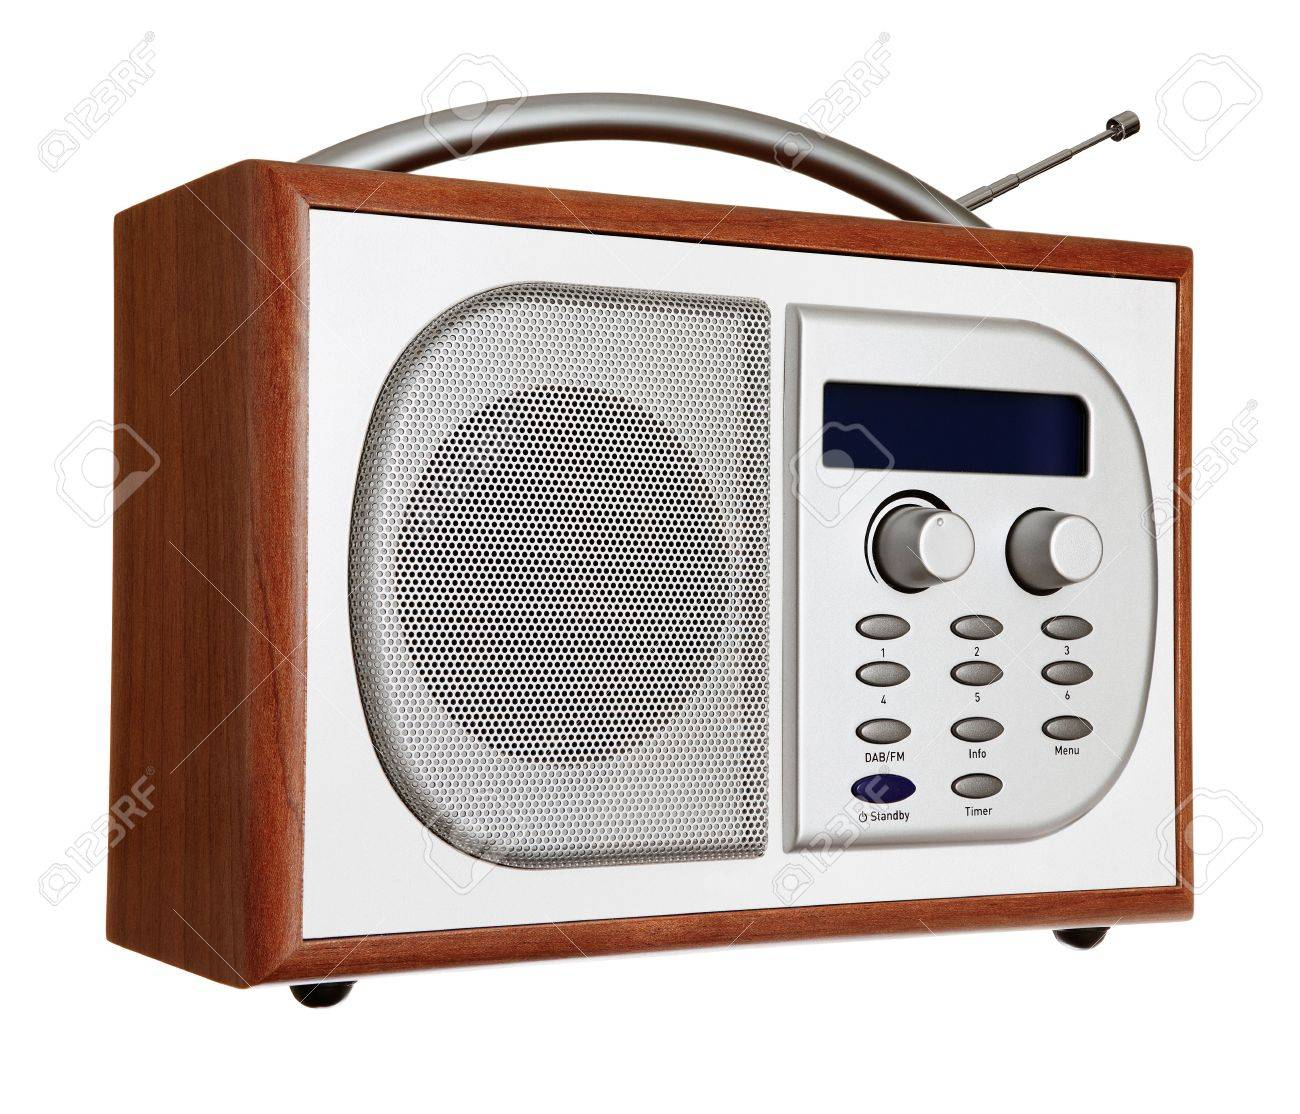 Portable radio isolated against a white background Stock Photo - 6289250